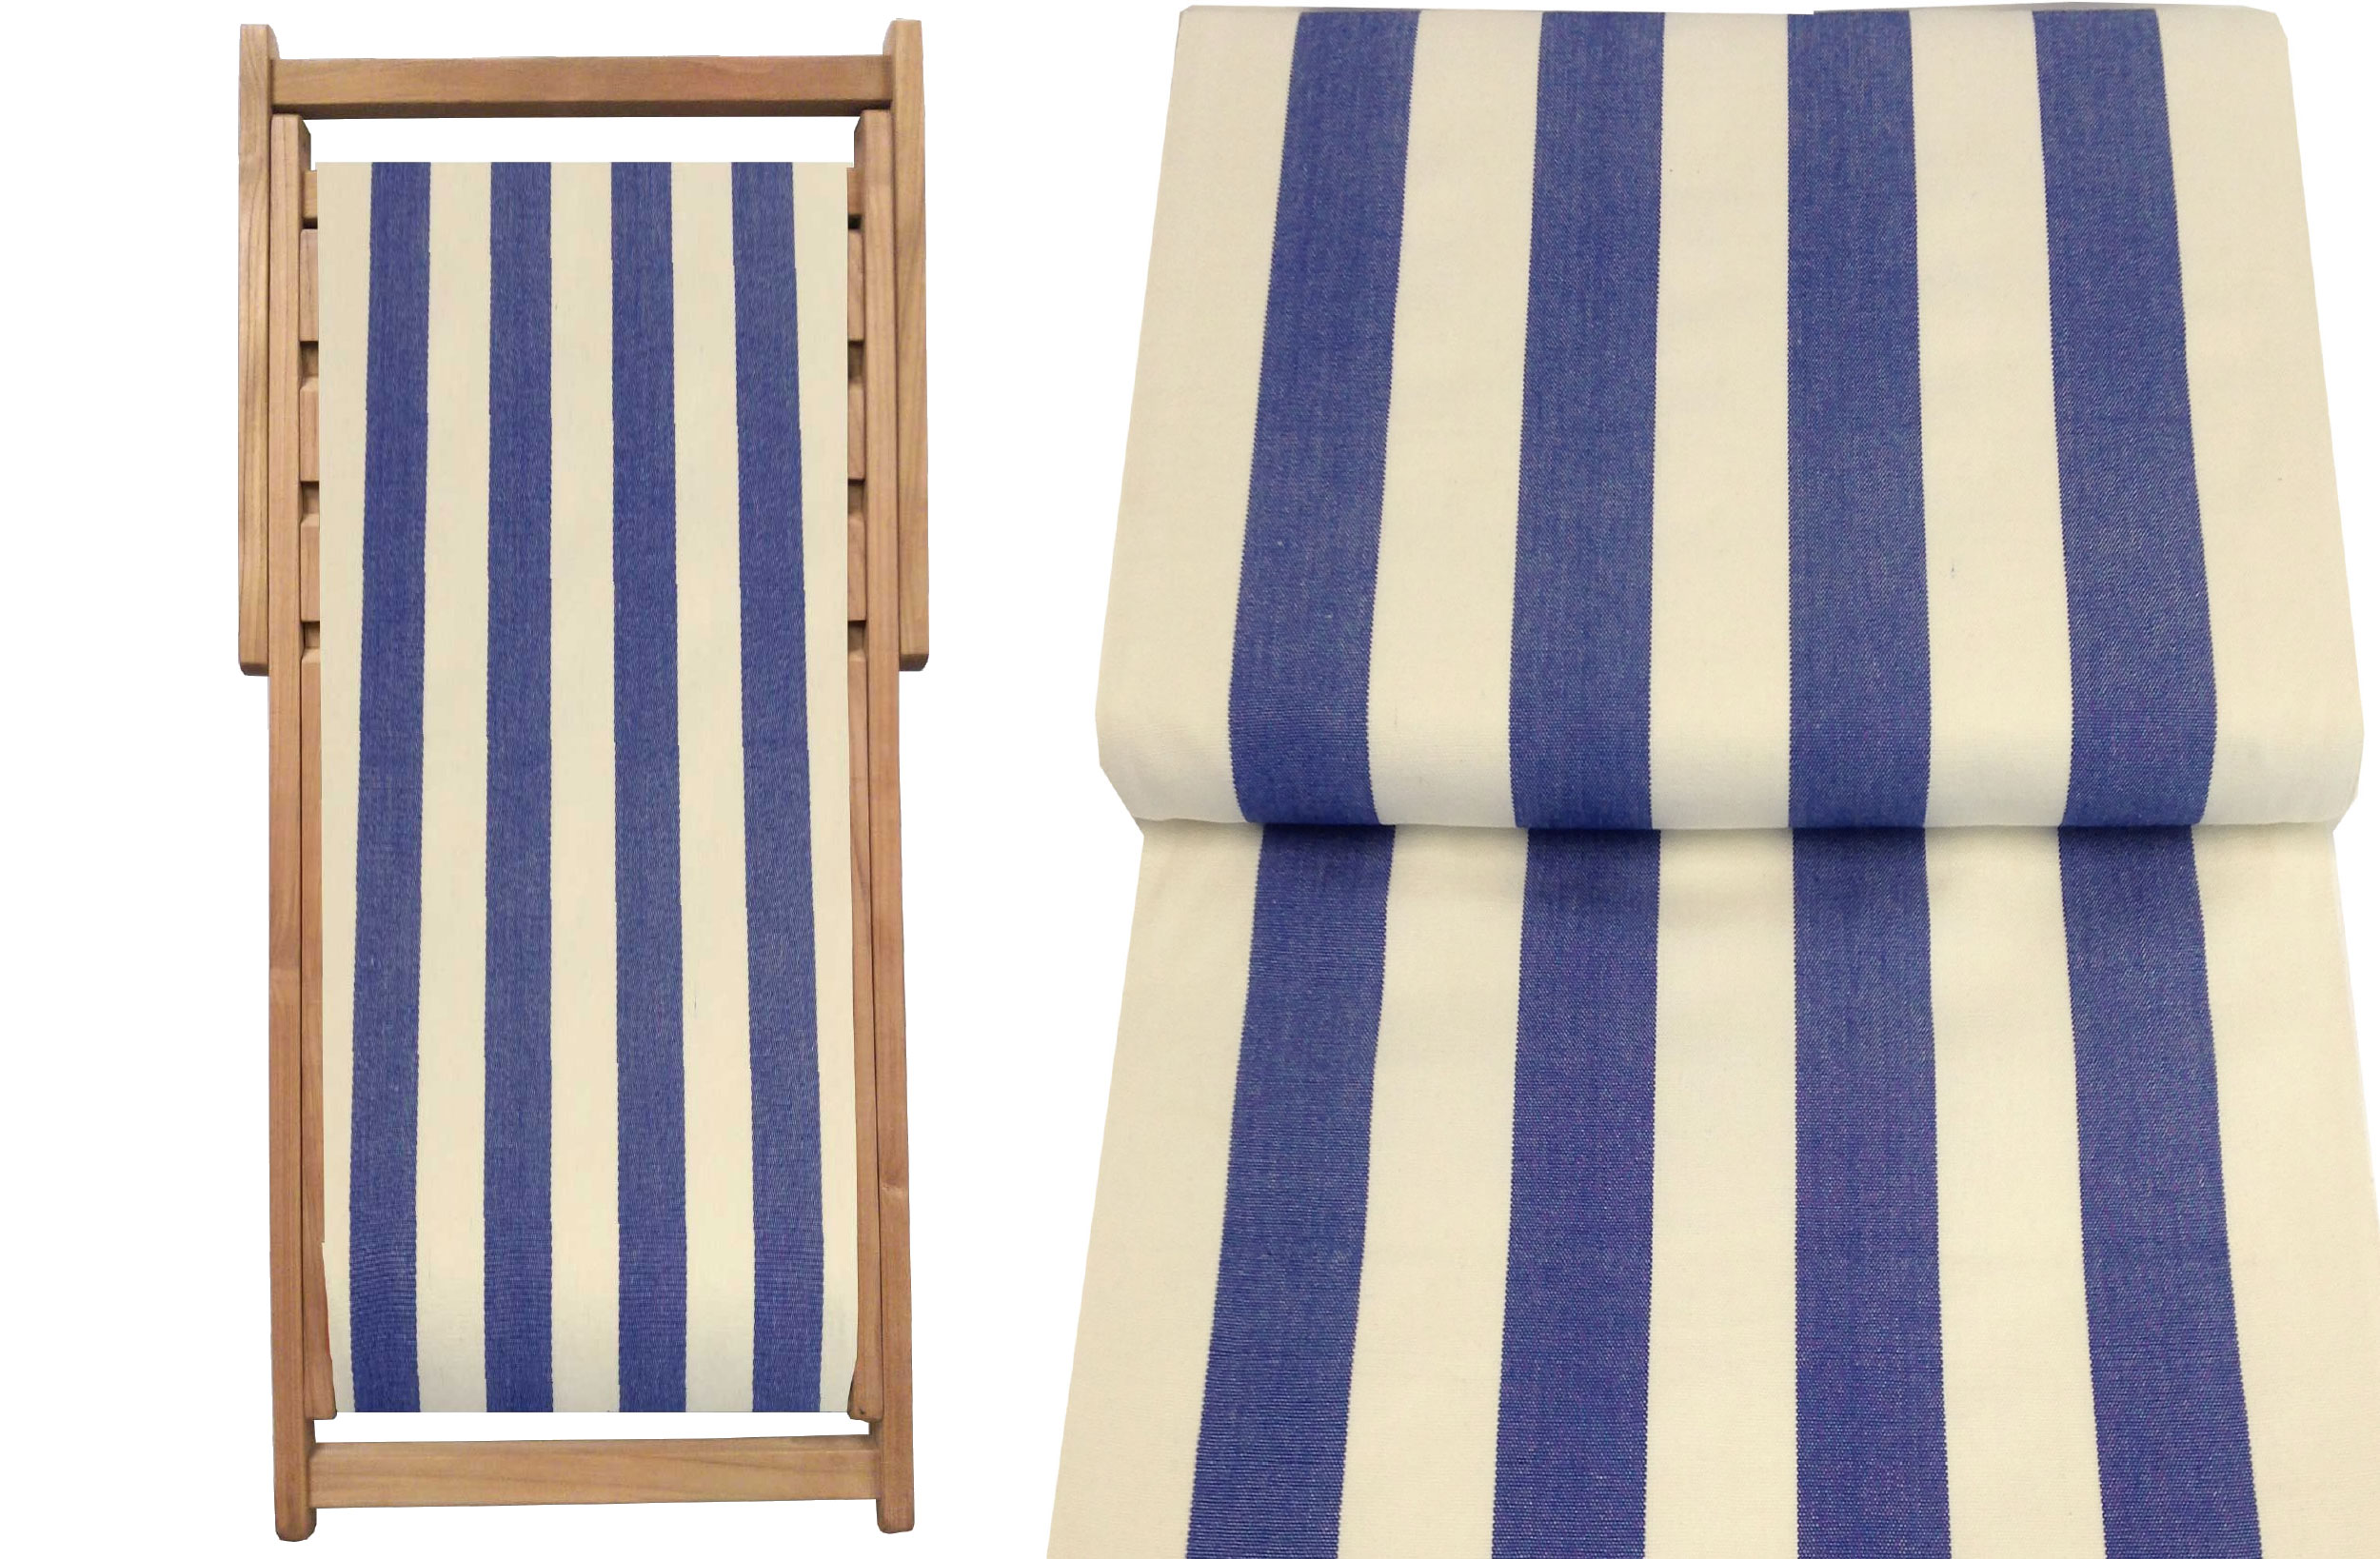 Teak Deck Chairs blue, white stripes